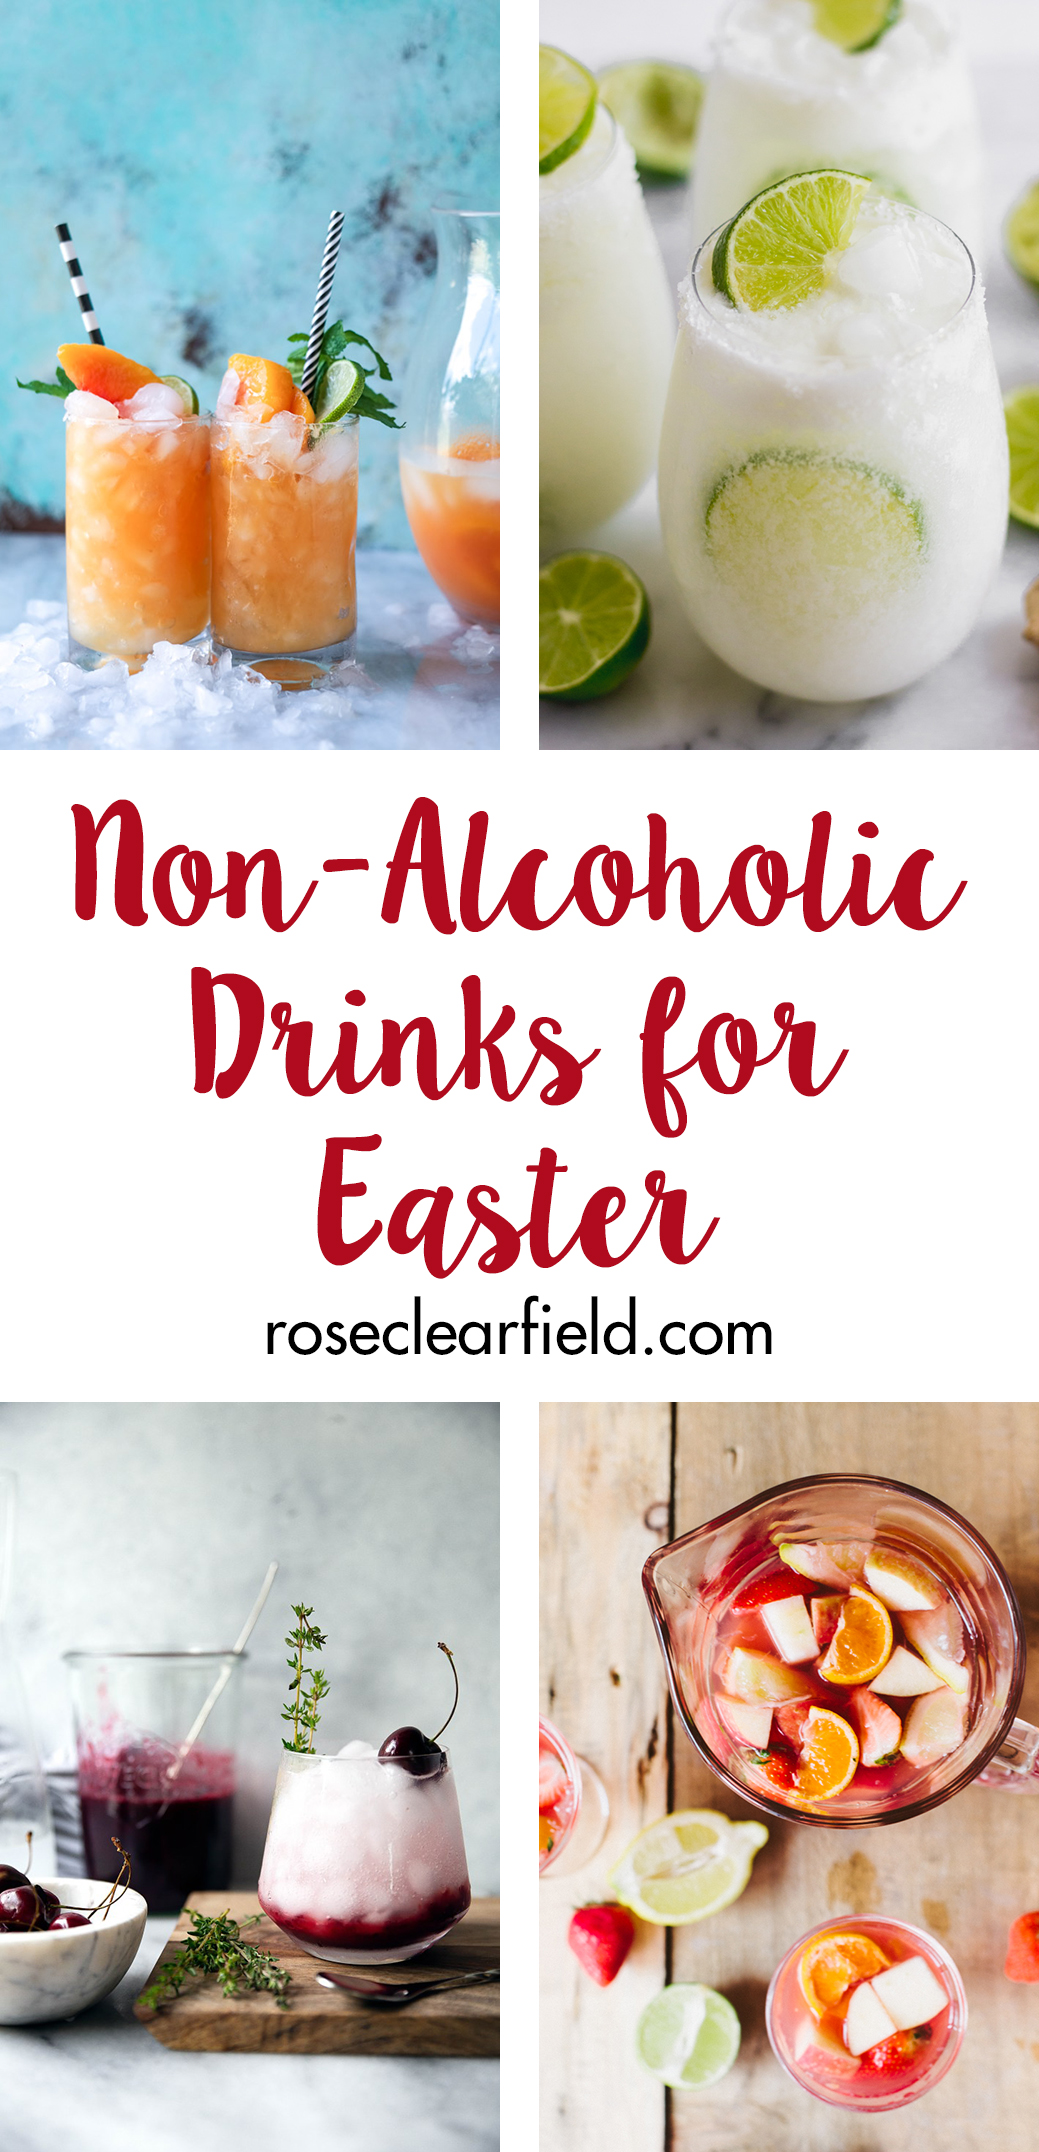 Non-alcoholic drinks for Easter. Whip up a refreshing beverage for your holiday brunch or dinner! #nonalcoholic #springdrinks #Easter   https://www.roseclearfield.com